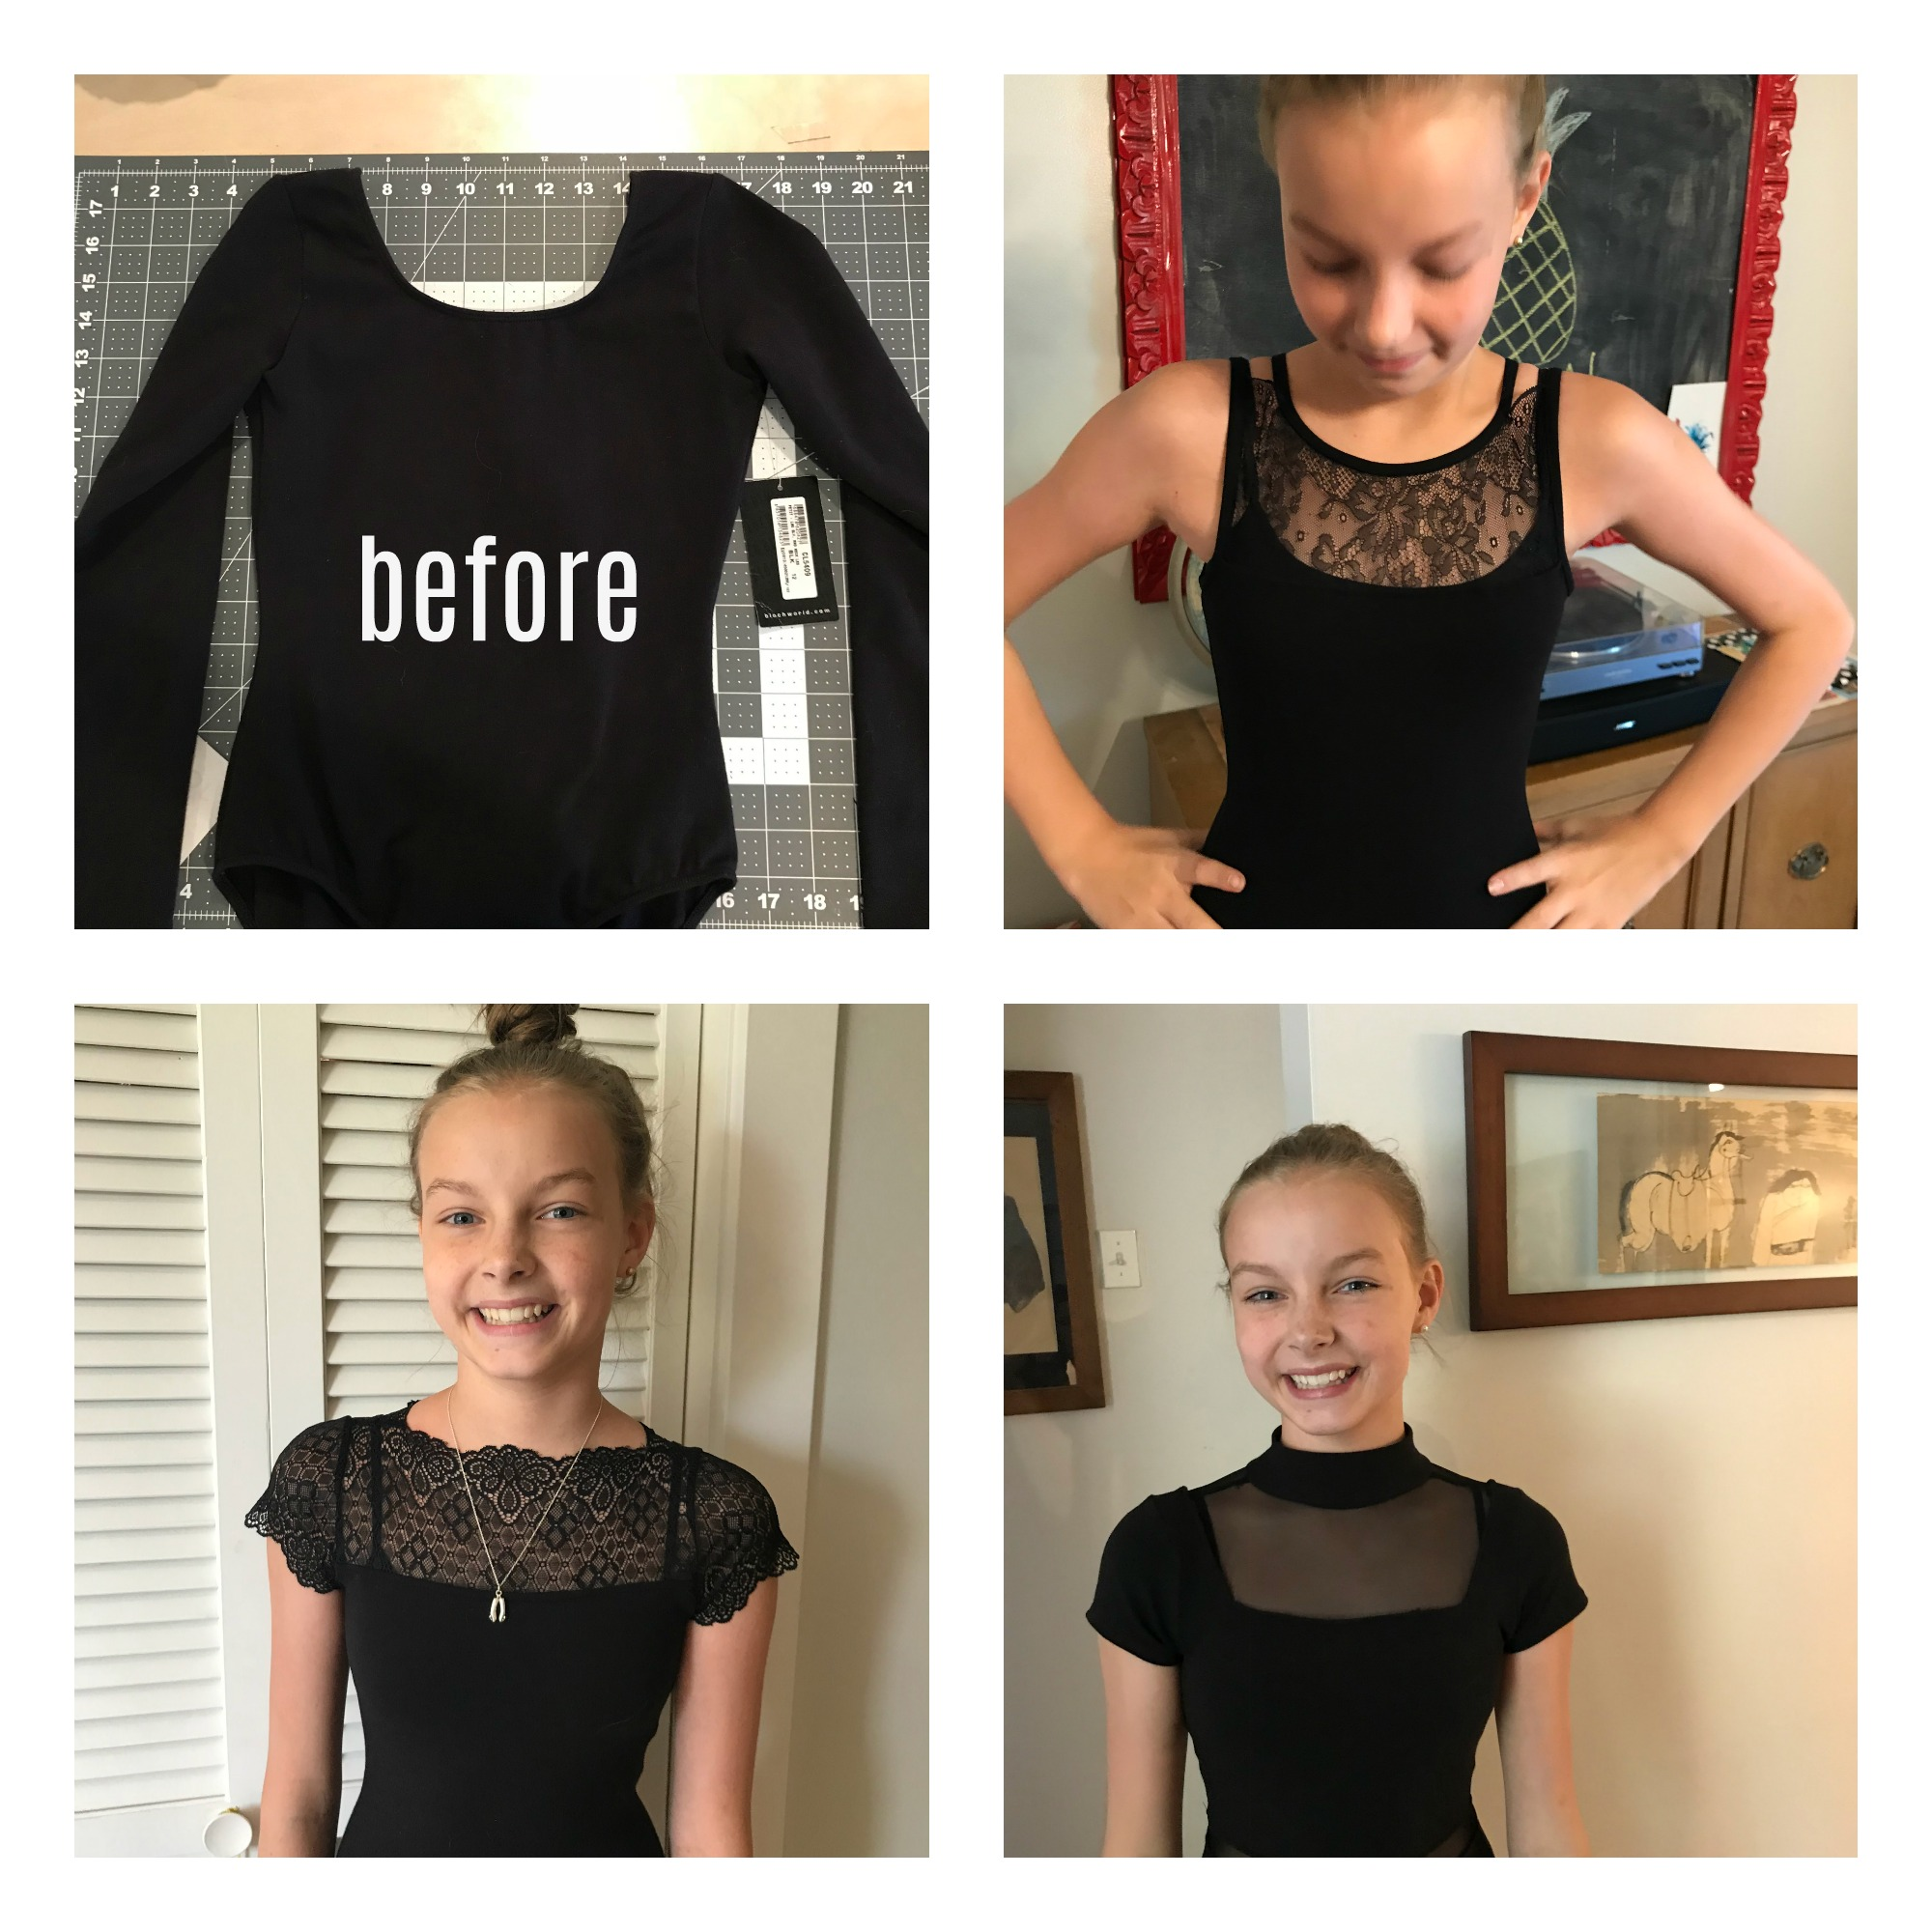 Sewing Dancewear by Nikki at Pin, Cut, Sew studio